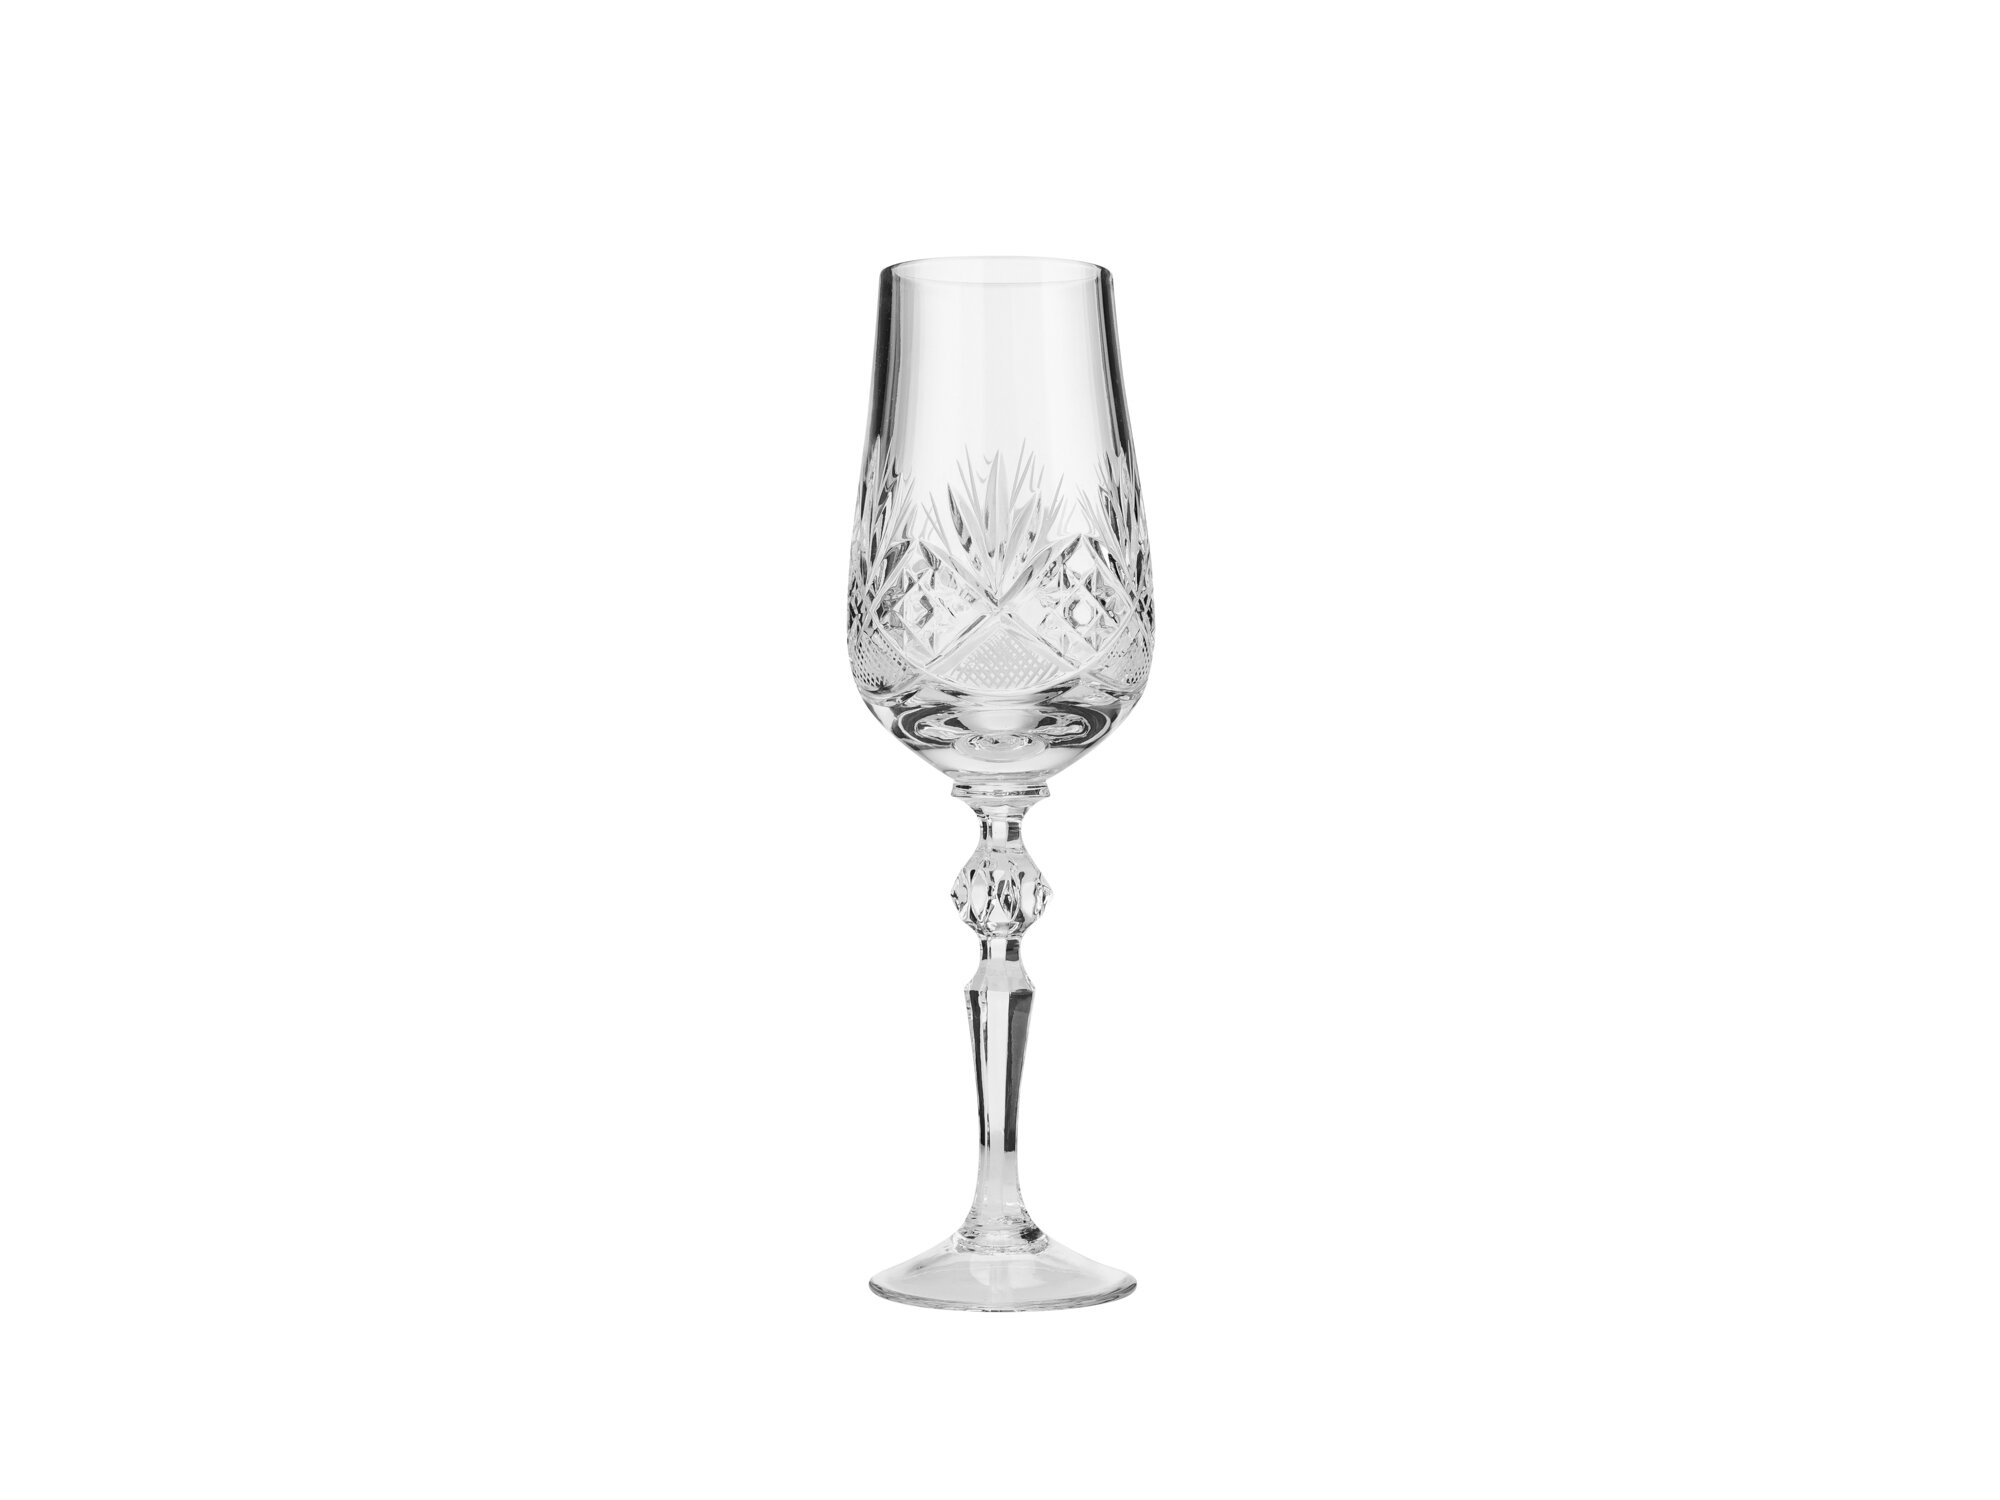 Astoria Grand Southa 6 Oz Crystal Flute Wayfair